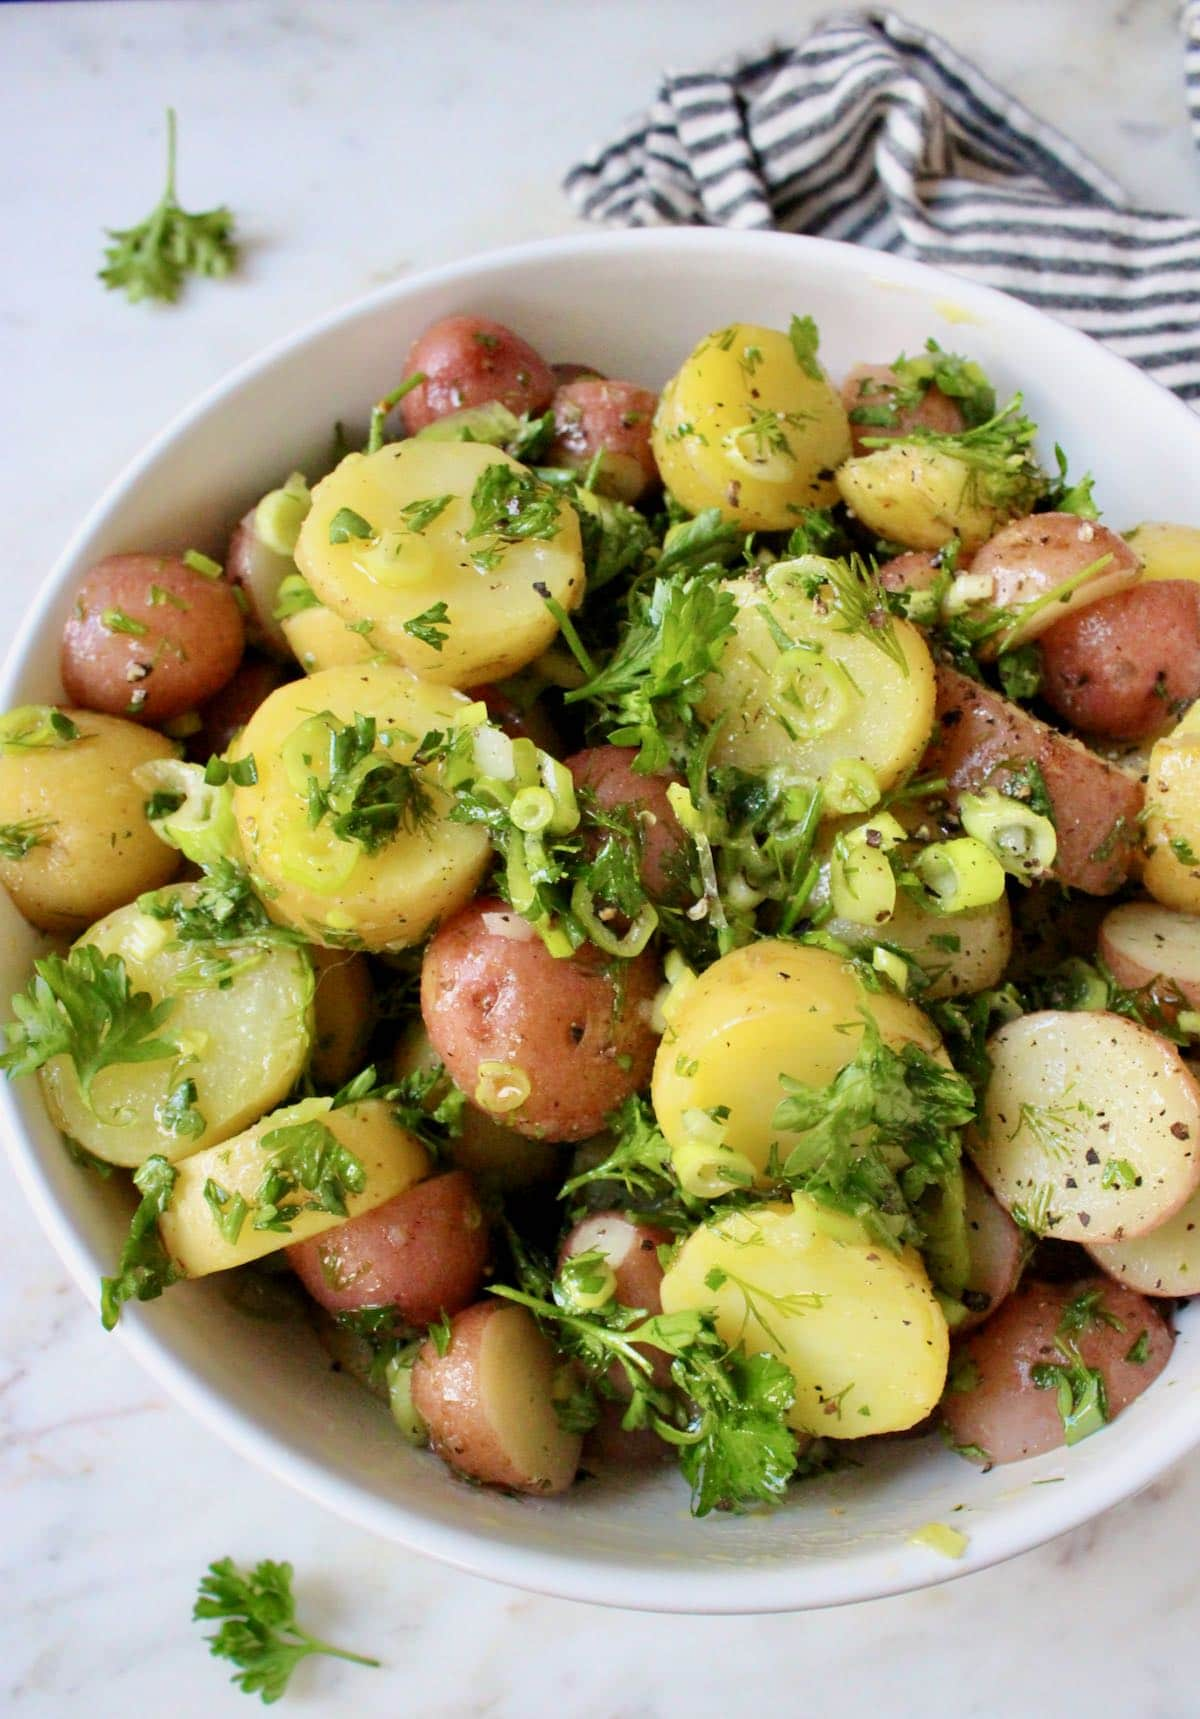 Parsley Potatoes with new baby potatoes